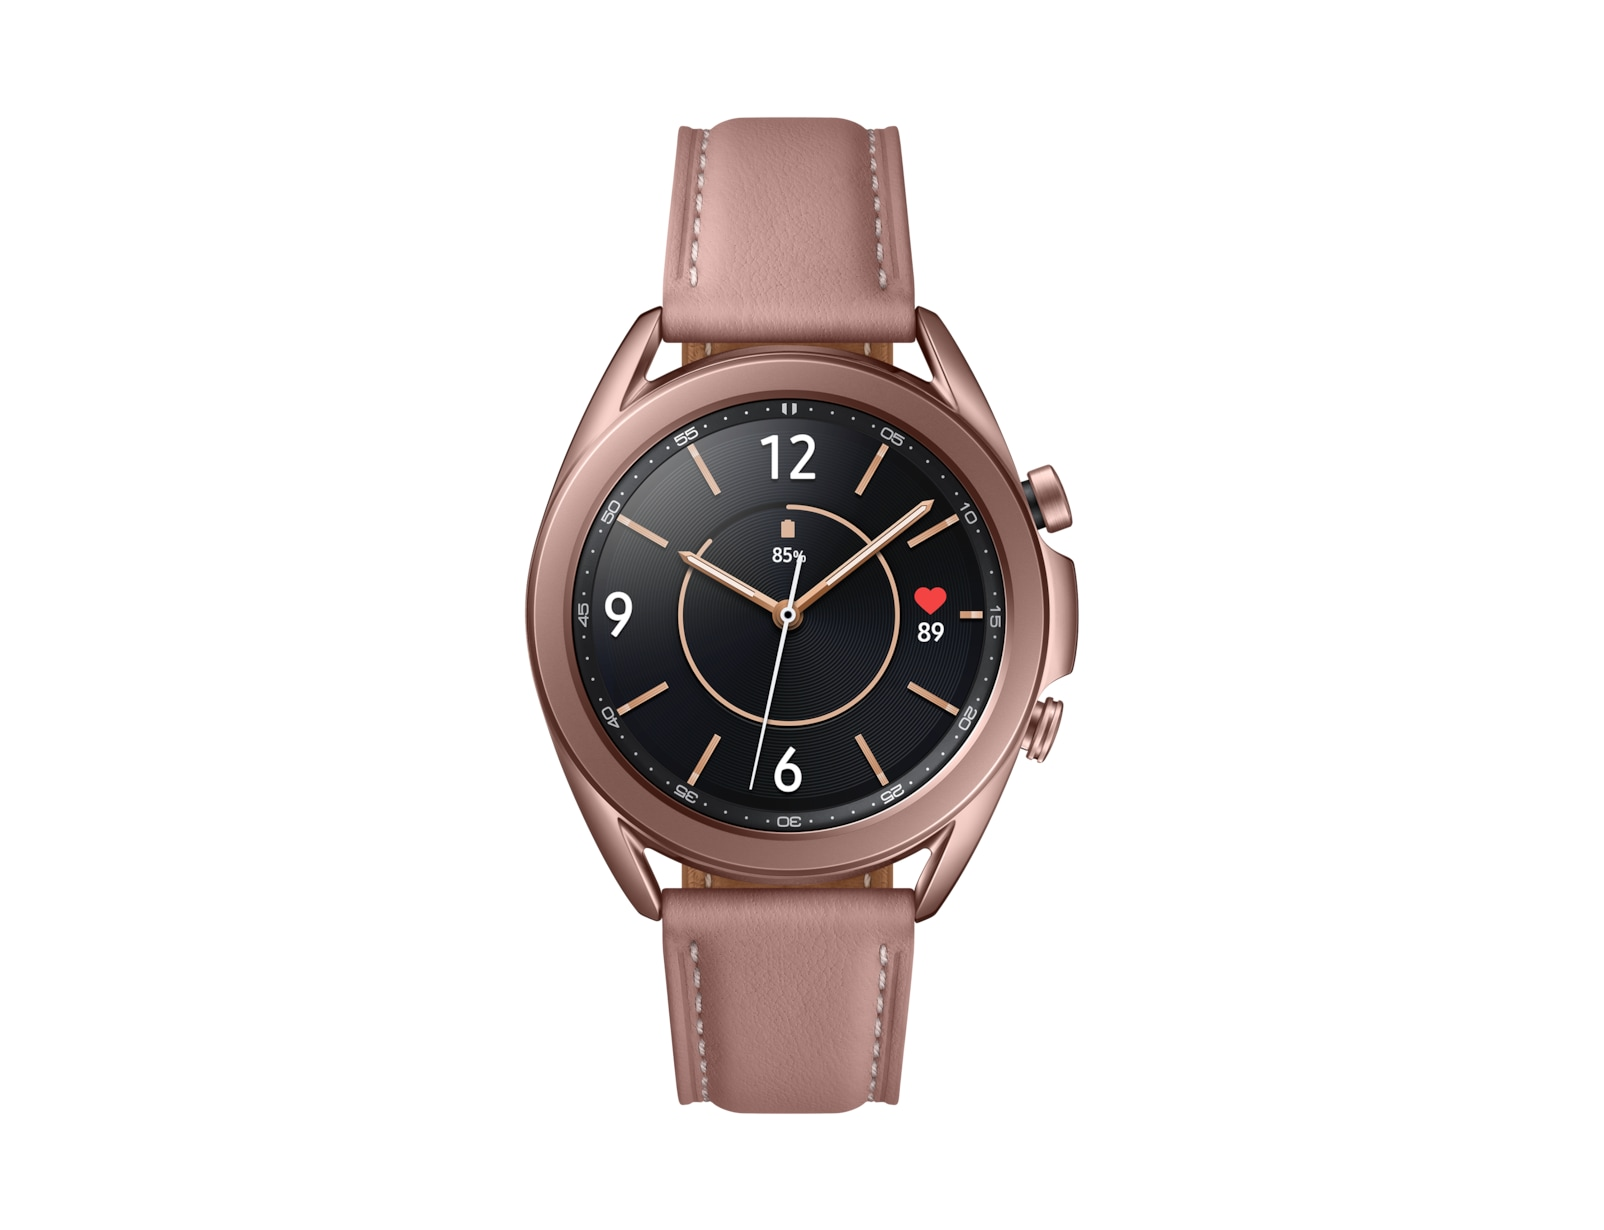 SMARTWATCH SAMSUNG GALAXY WATCH 3 41MM GOLD ROSE